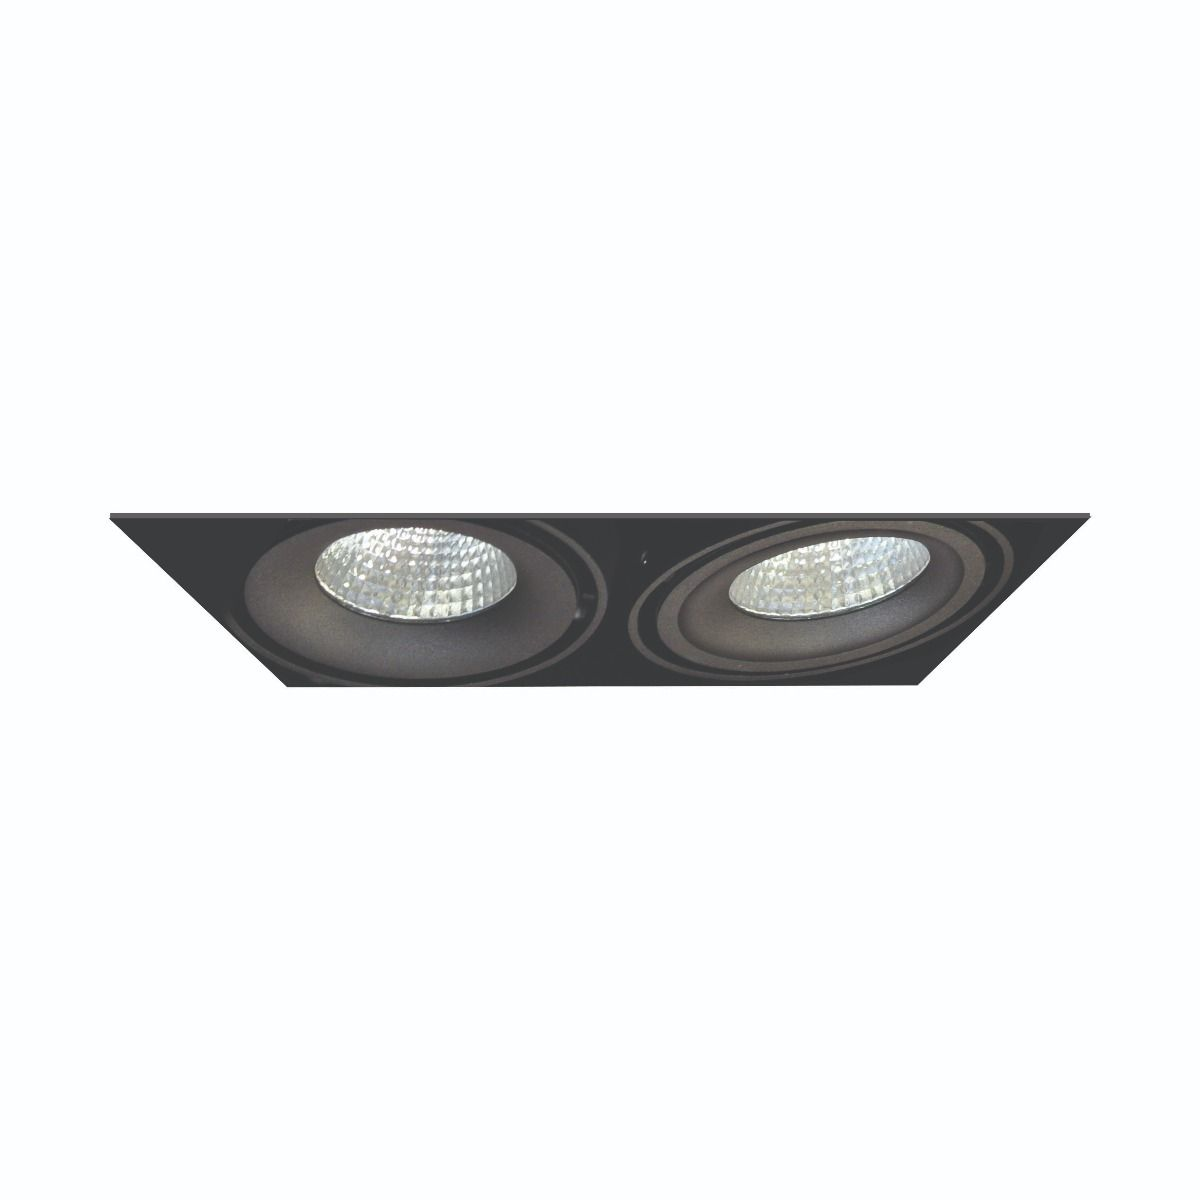 Alcon Lighting 14026 2 Oculare Architectural Led Trimless Adjule Heads Multiple Recessed System Direct Down Fixture